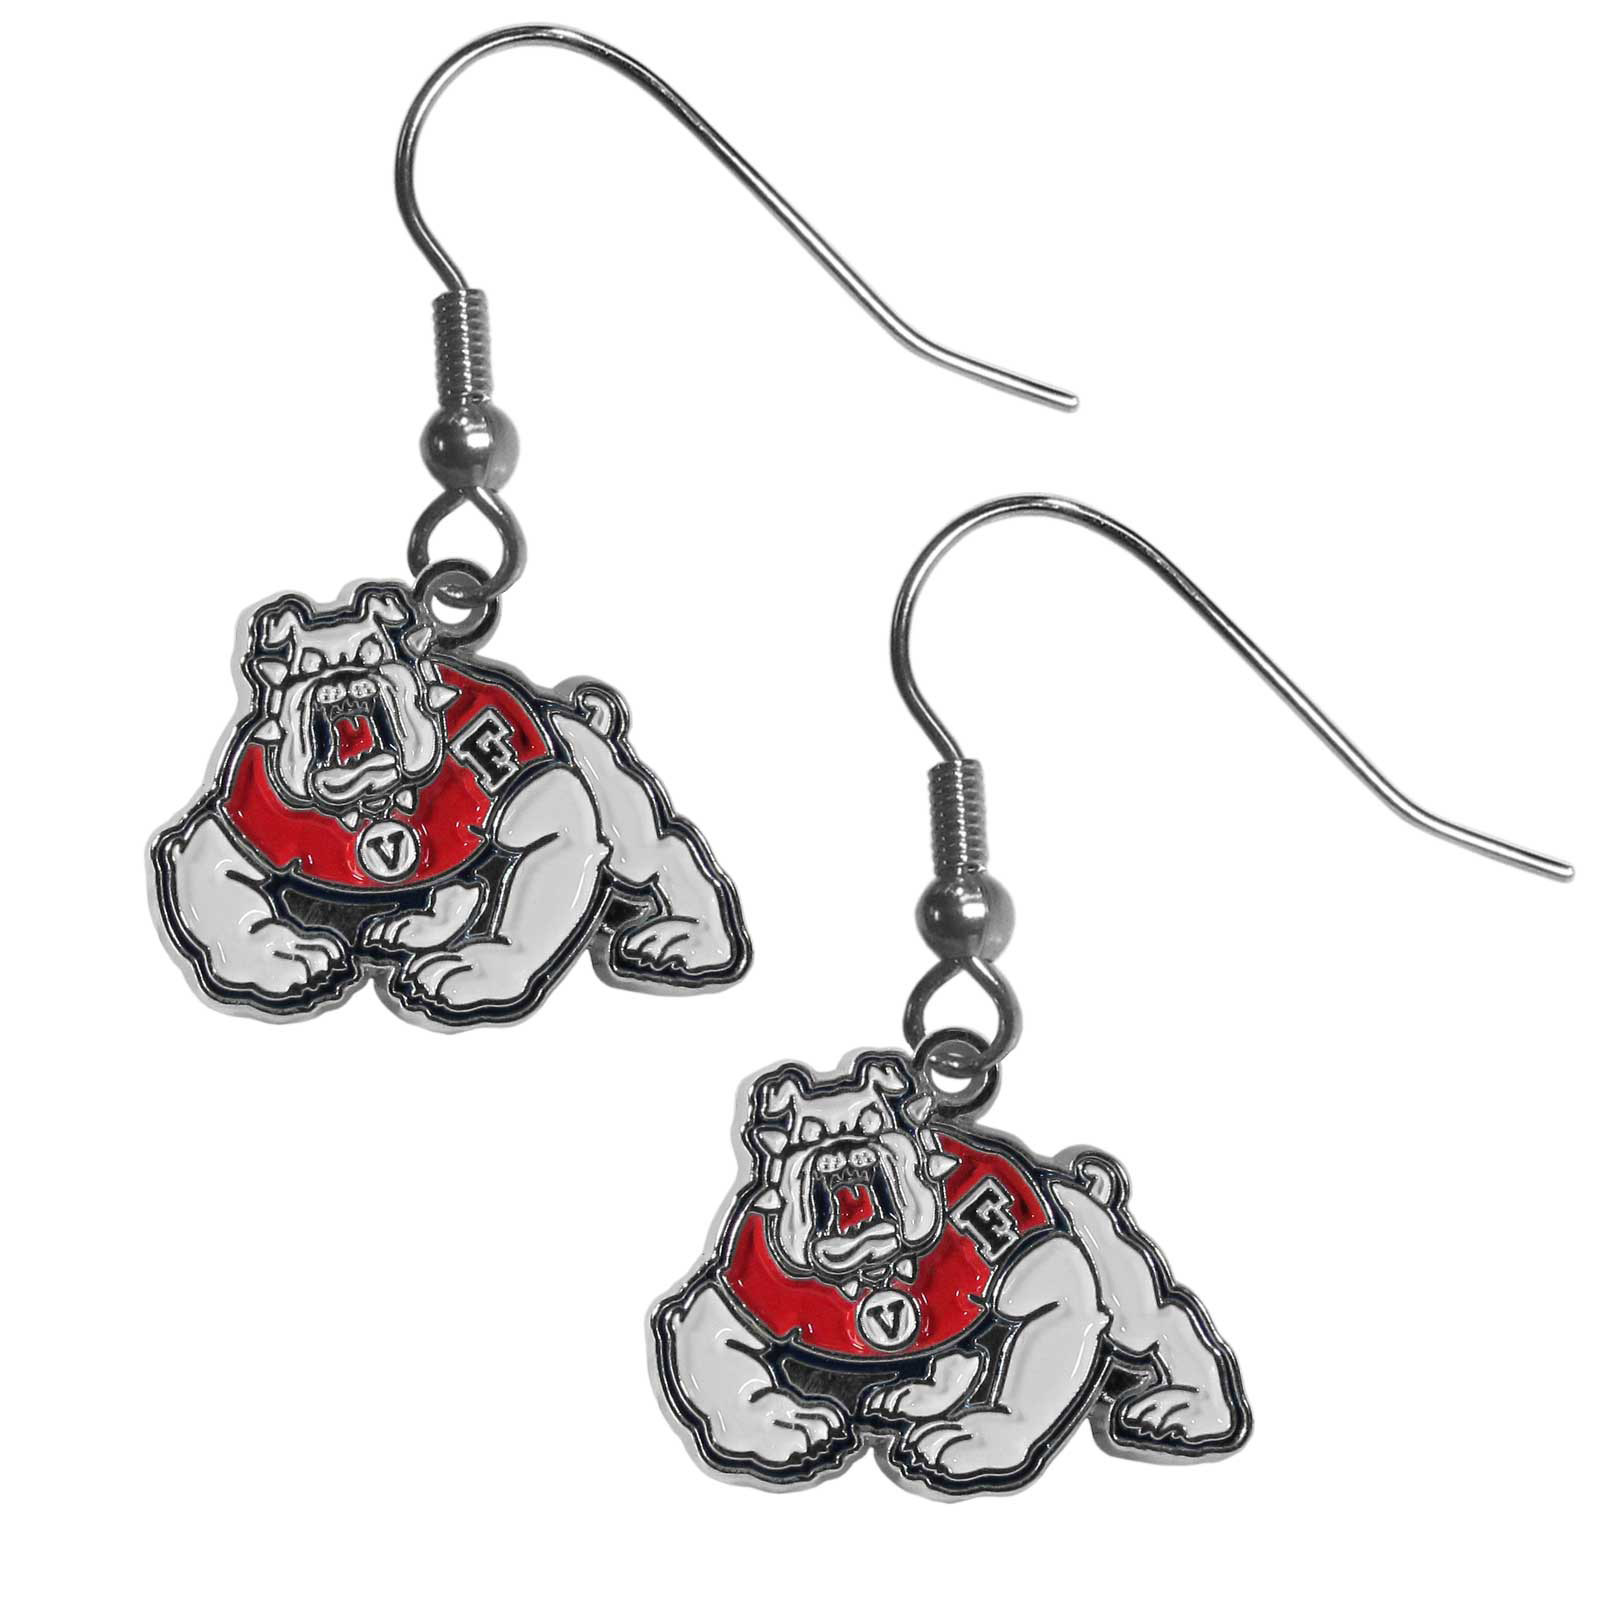 Fresno St. Bulldogs Chrome Dangle Earrings - These on fleek Fresno St. Bulldogs Dangle earrings are a lightweight and casual fashion earring with a striking team charm. These trendy understated earrings feature a carved and detailed enameled charm. Sporty meets fashion-forward with these spirited earrings that would make the perfect gift for any female fan. These trendy earrings are the perfect for every day but especially fun to glam up on game-day.